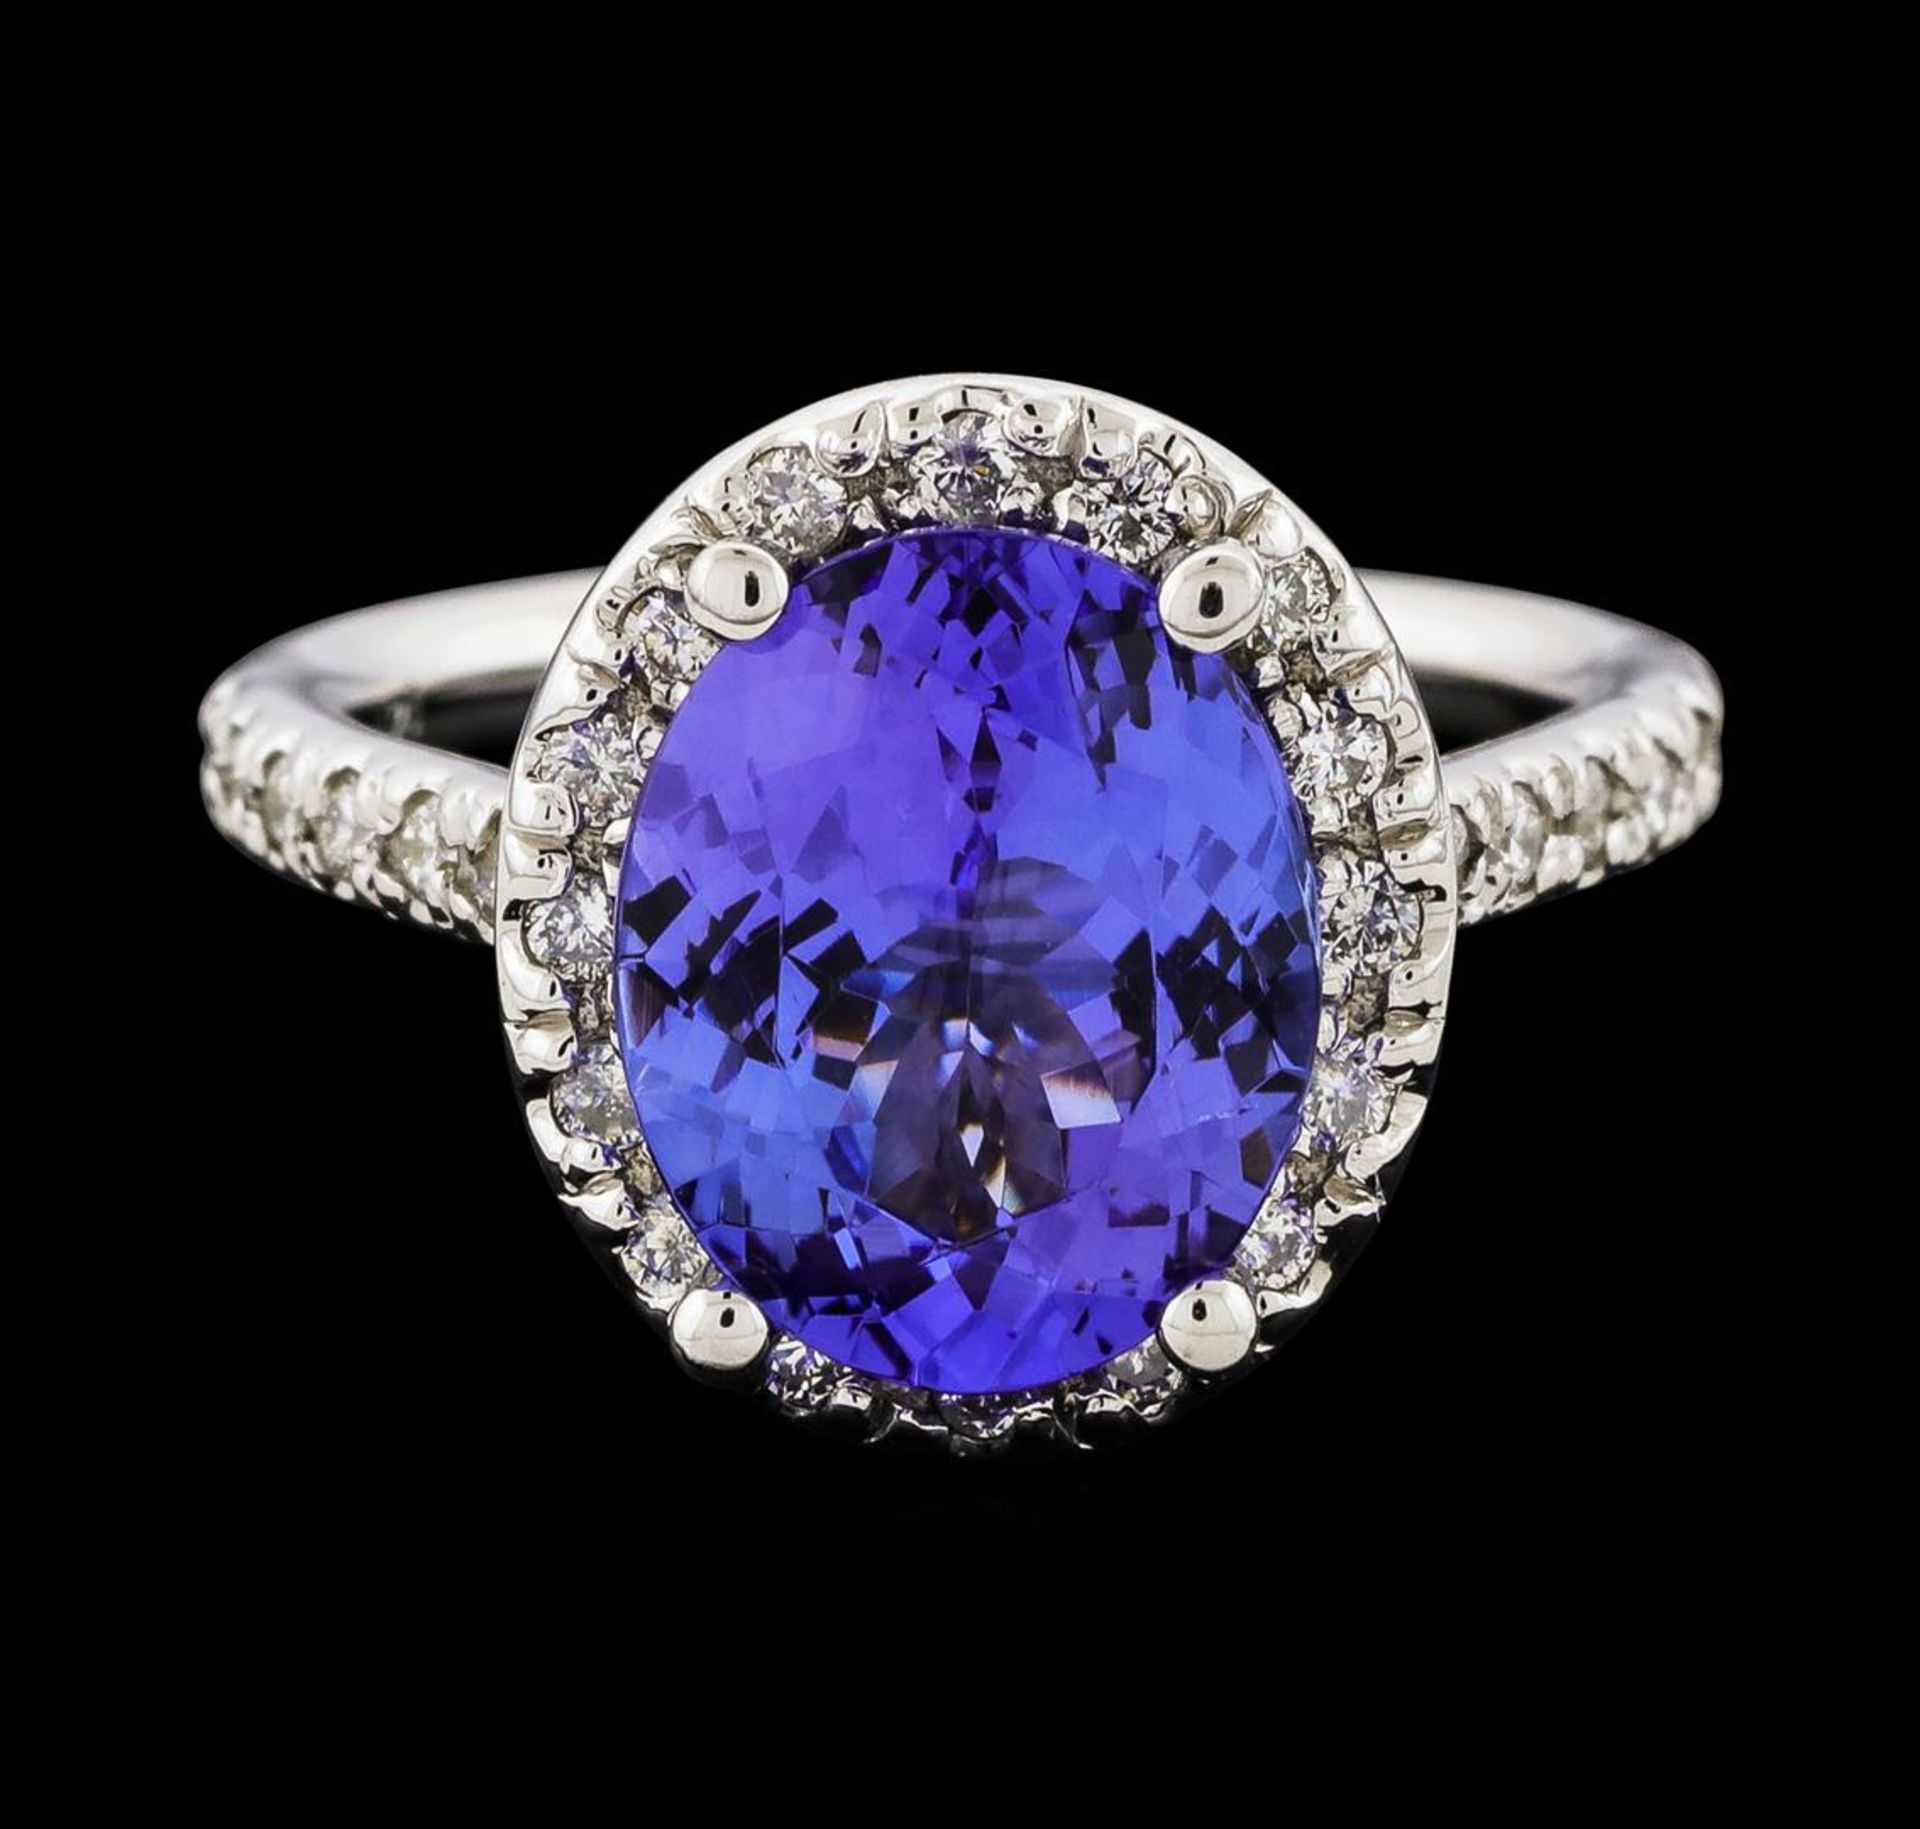 3.25 ctw Tanzanite and Diamond Ring - 14KT White Gold - Image 2 of 4